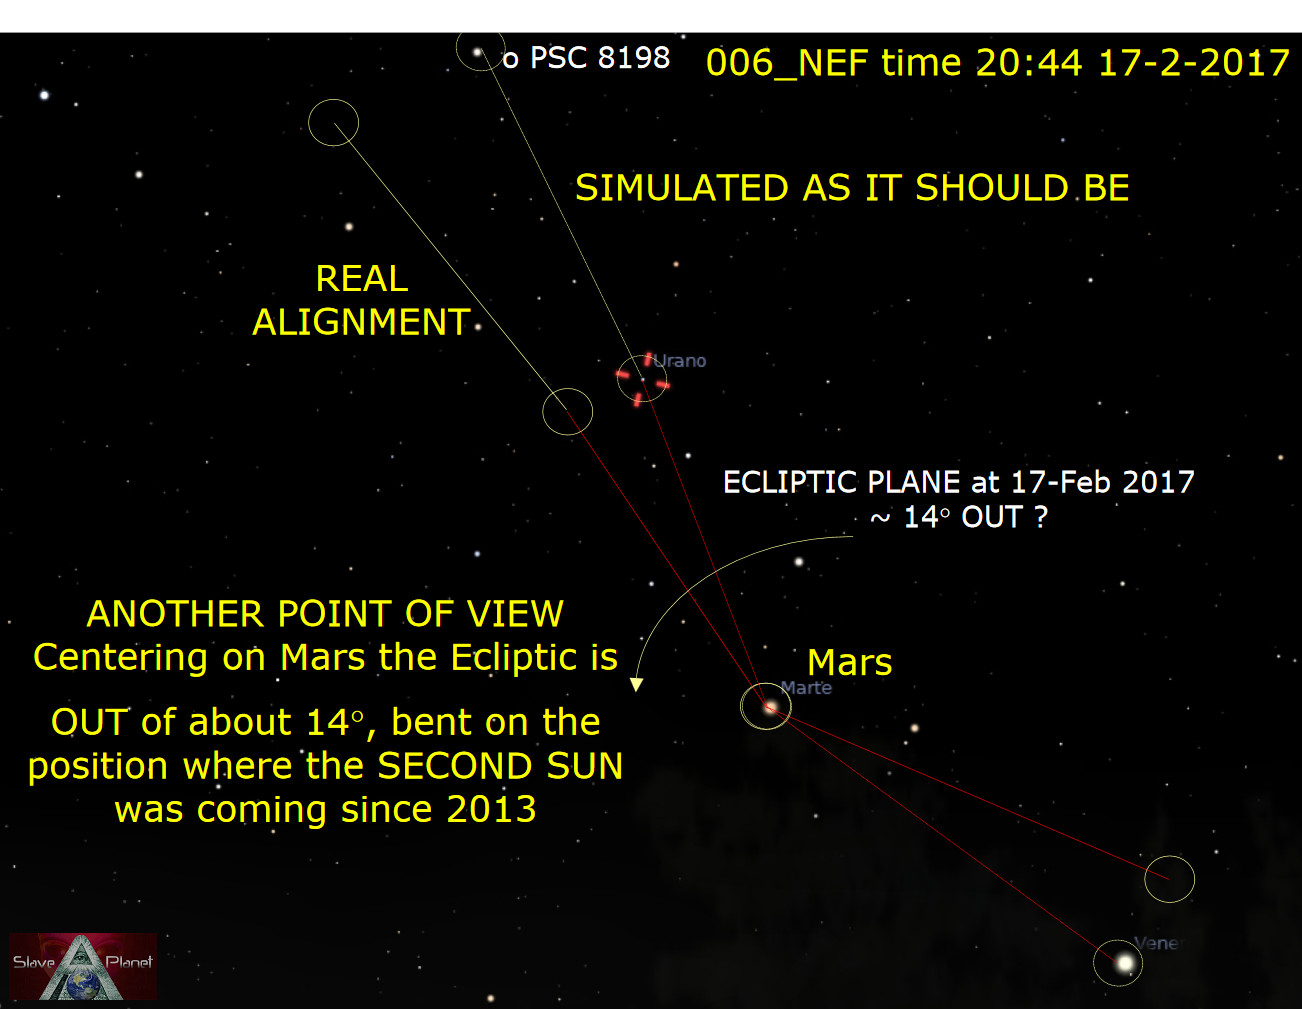 Planet X Nibiru 2nd Sun LATEST CAPTURE Uranus Orbit Shift CONFIRMATION